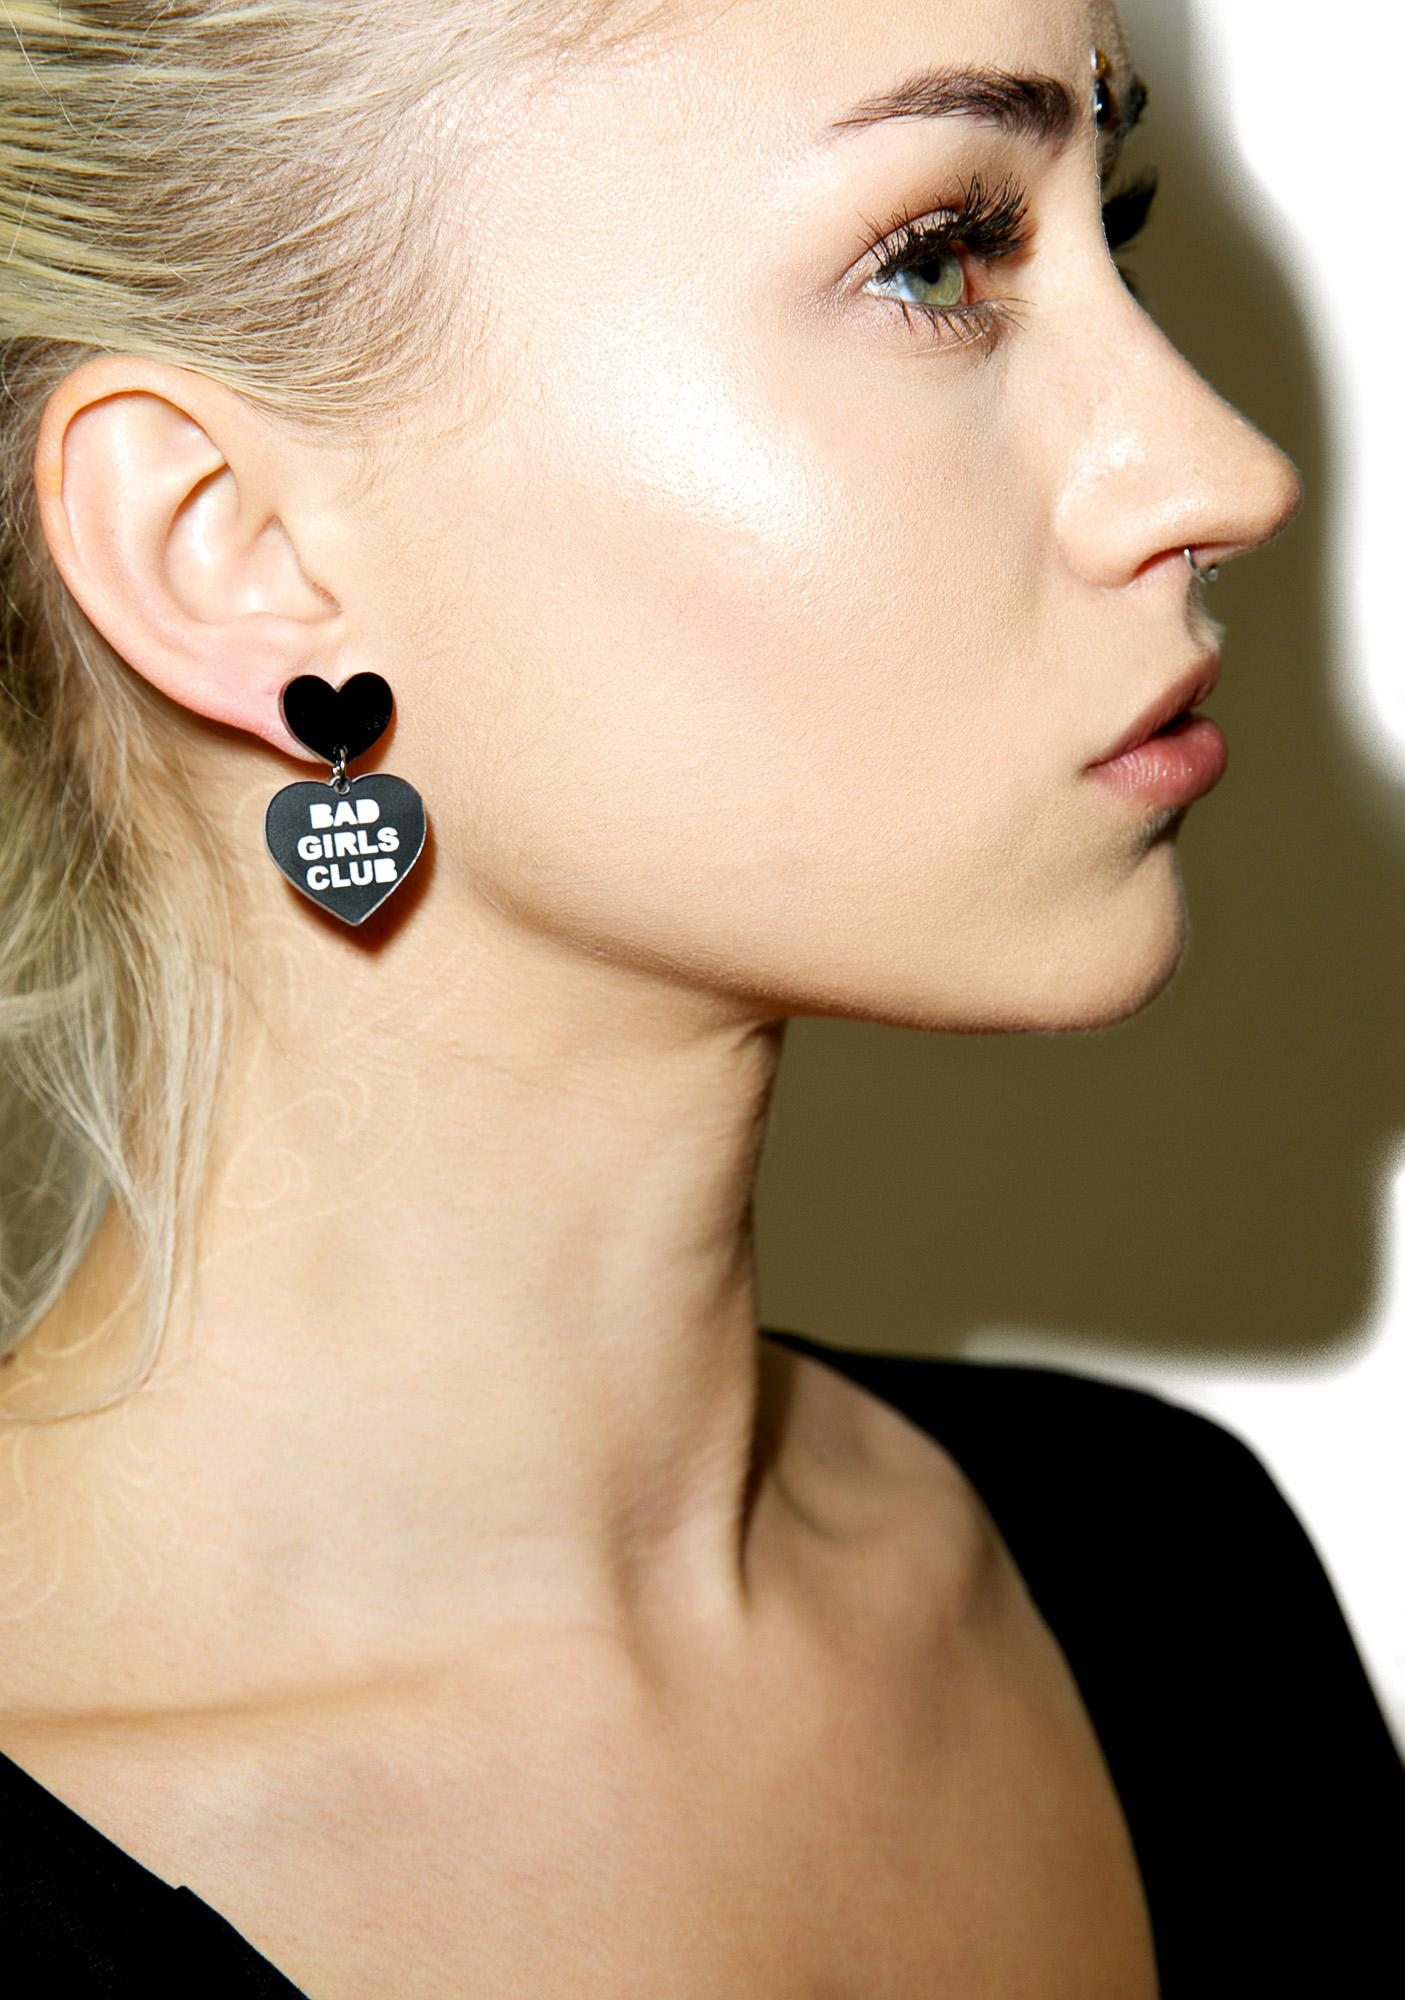 Haus of Dizzy Bad Girls Club Earrings